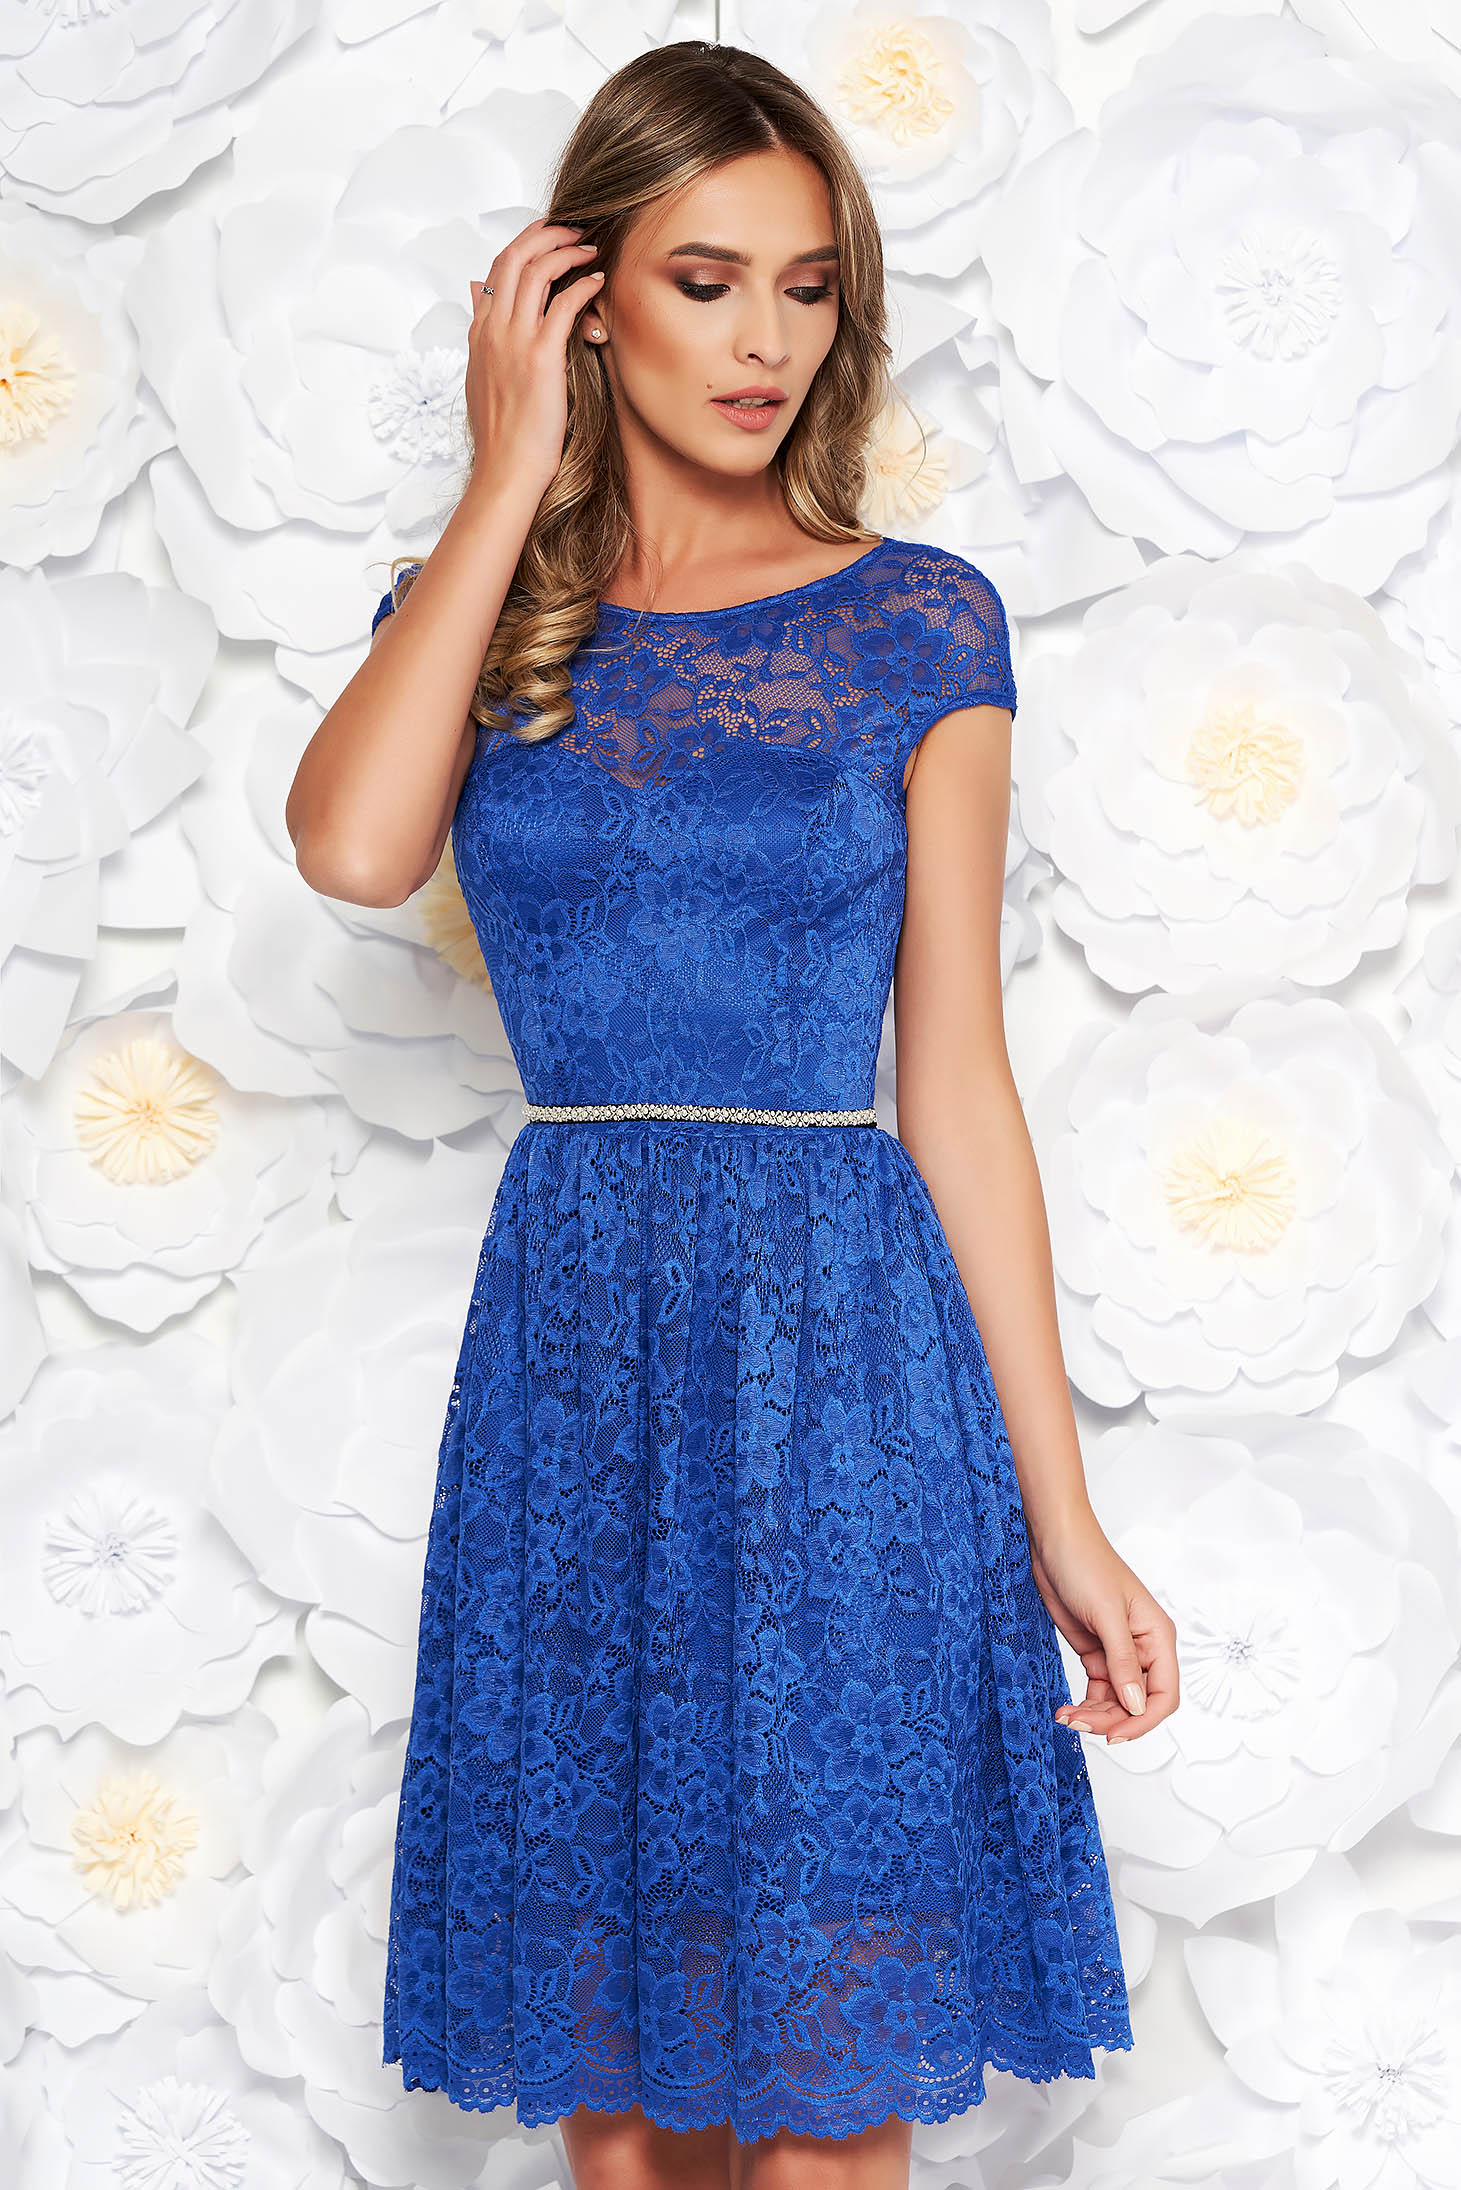 StarShinerS blue elegant cloche dress from laced fabric with inside lining accessorized with tied waistband